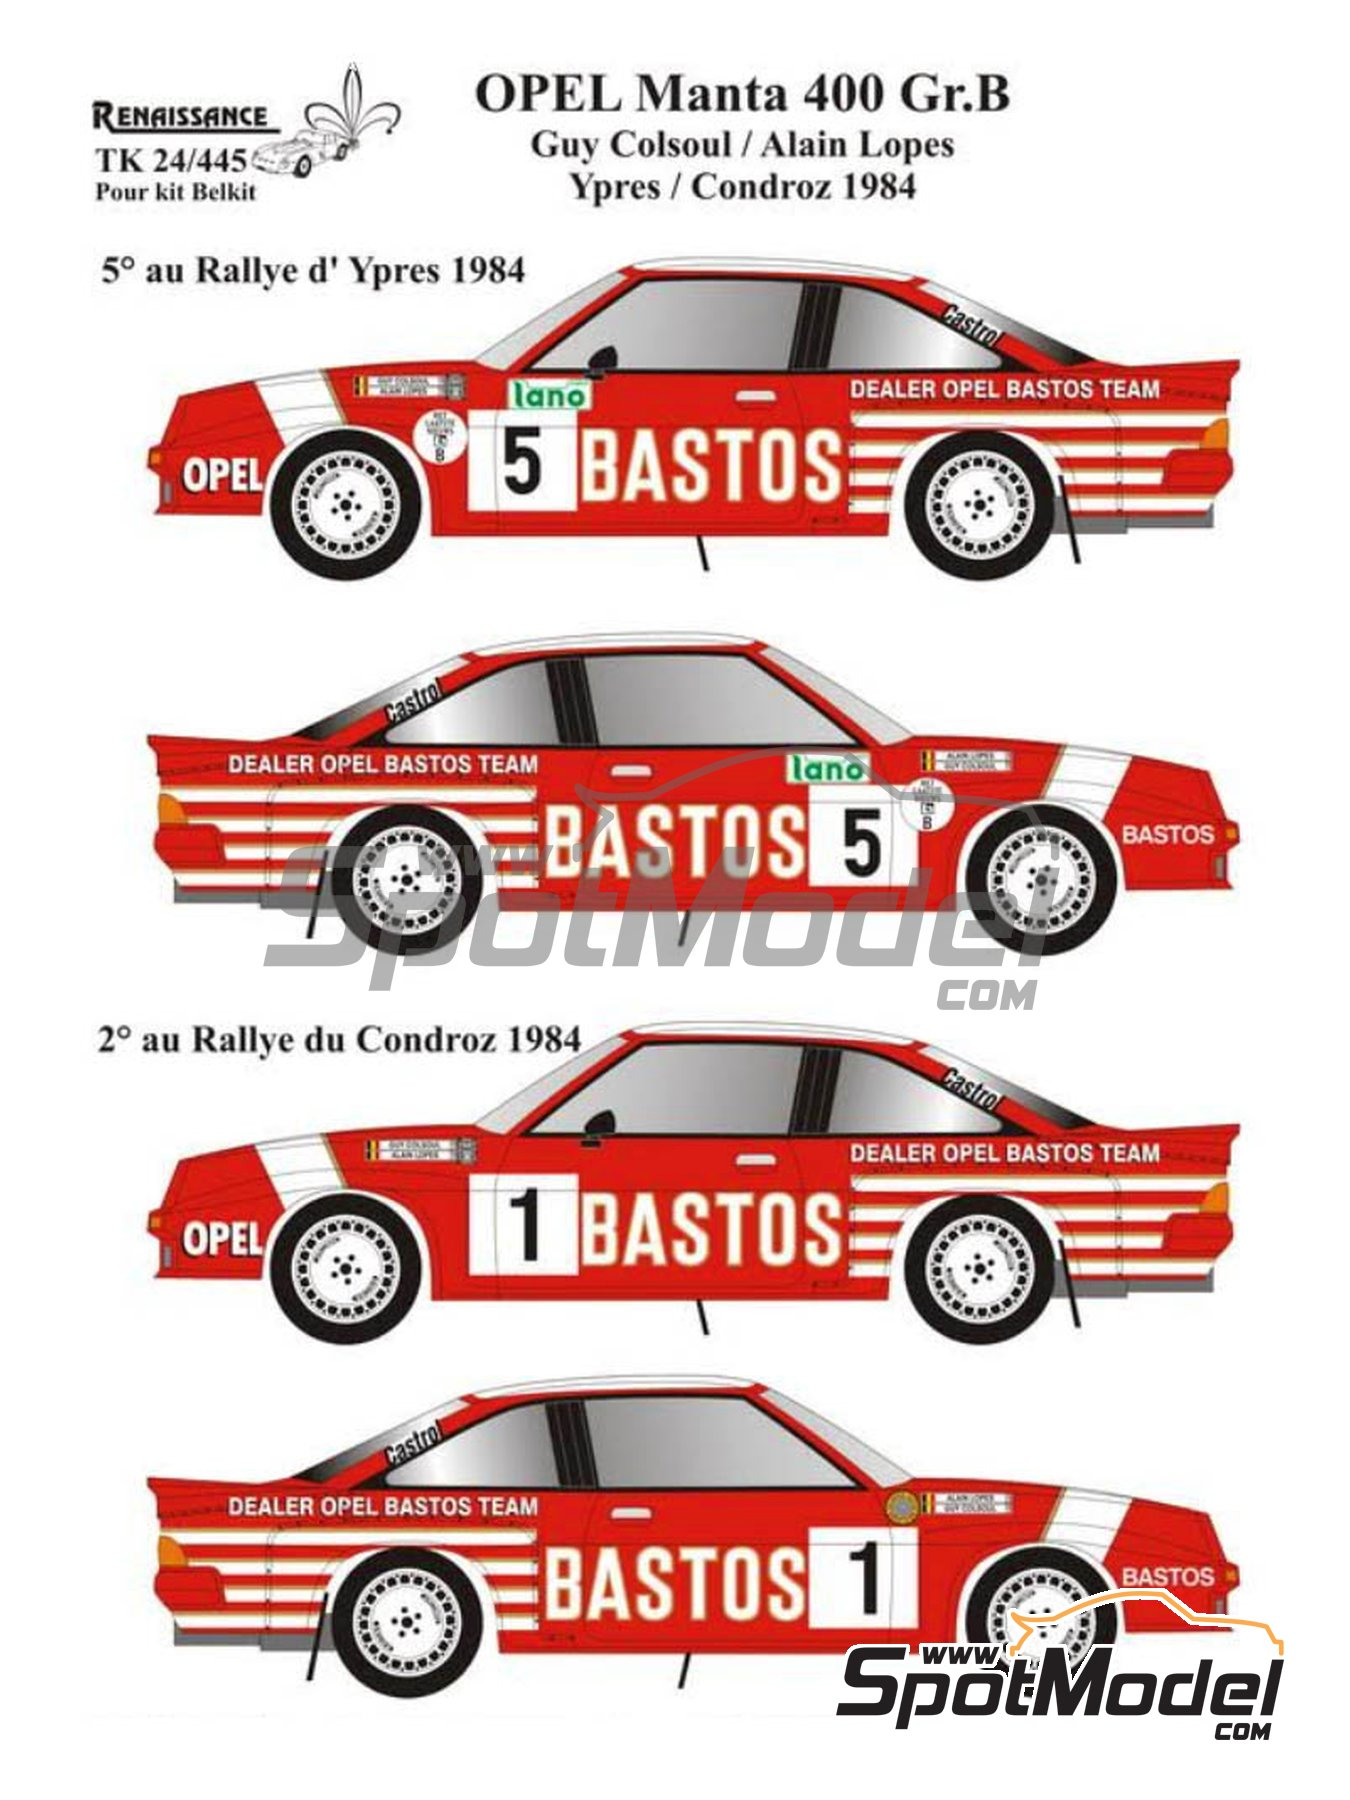 Opel Manta 400 Group B - Condroz Rally, Ypres Rally 1984 | Marking / livery in 1/24 scale manufactured by Renaissance Models (ref. TK24-445) image